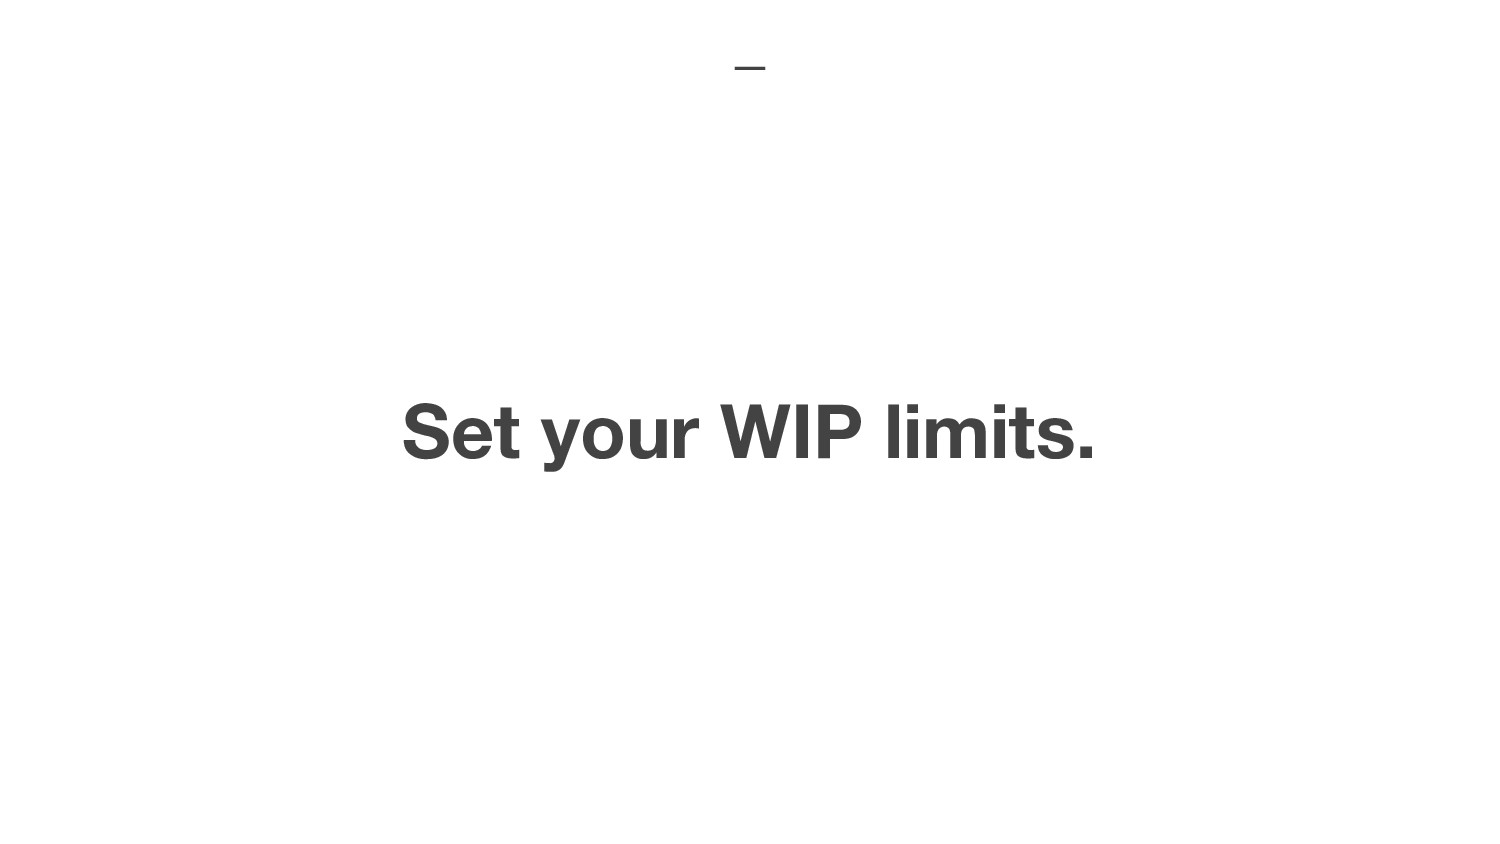 Set your WIP limits.